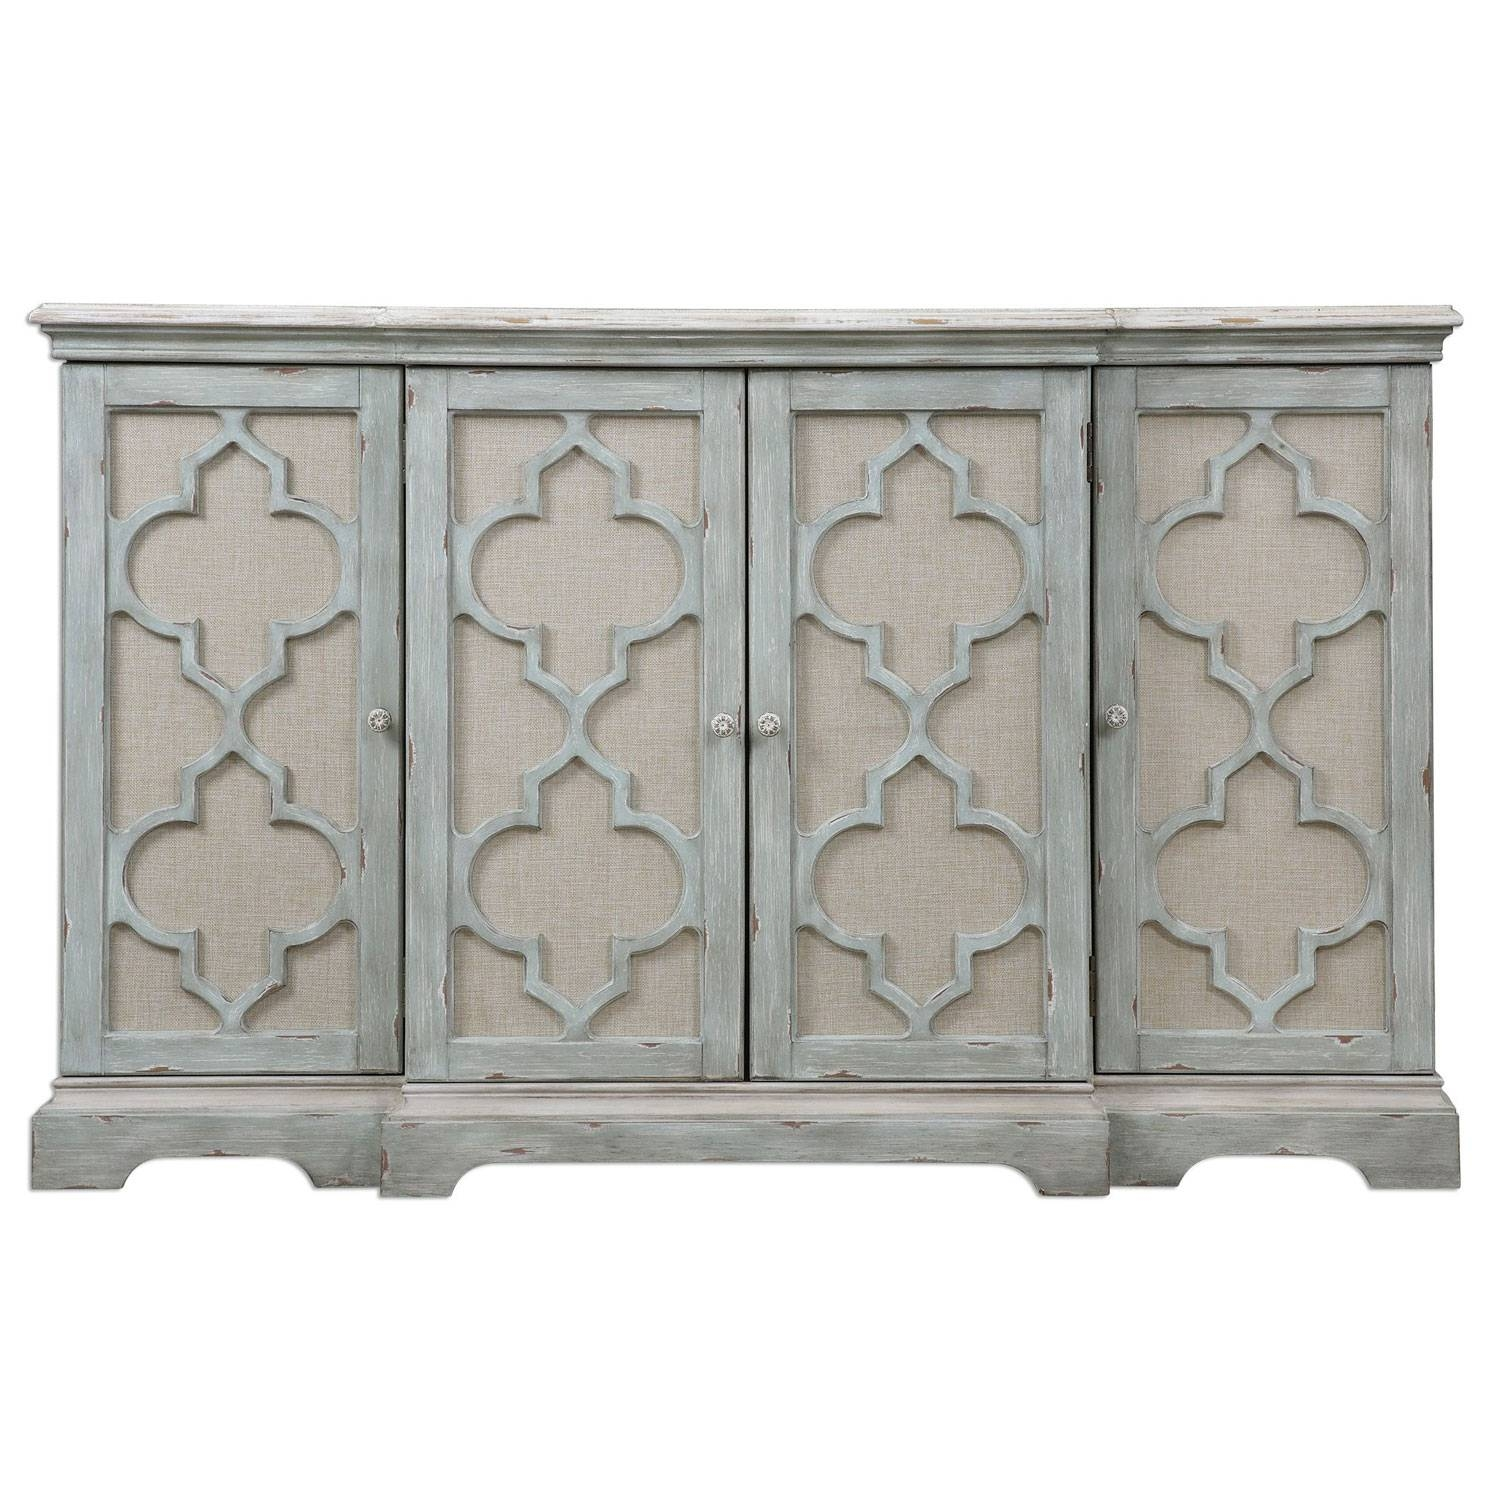 15 Collection of Shallow Sideboard Cabinets